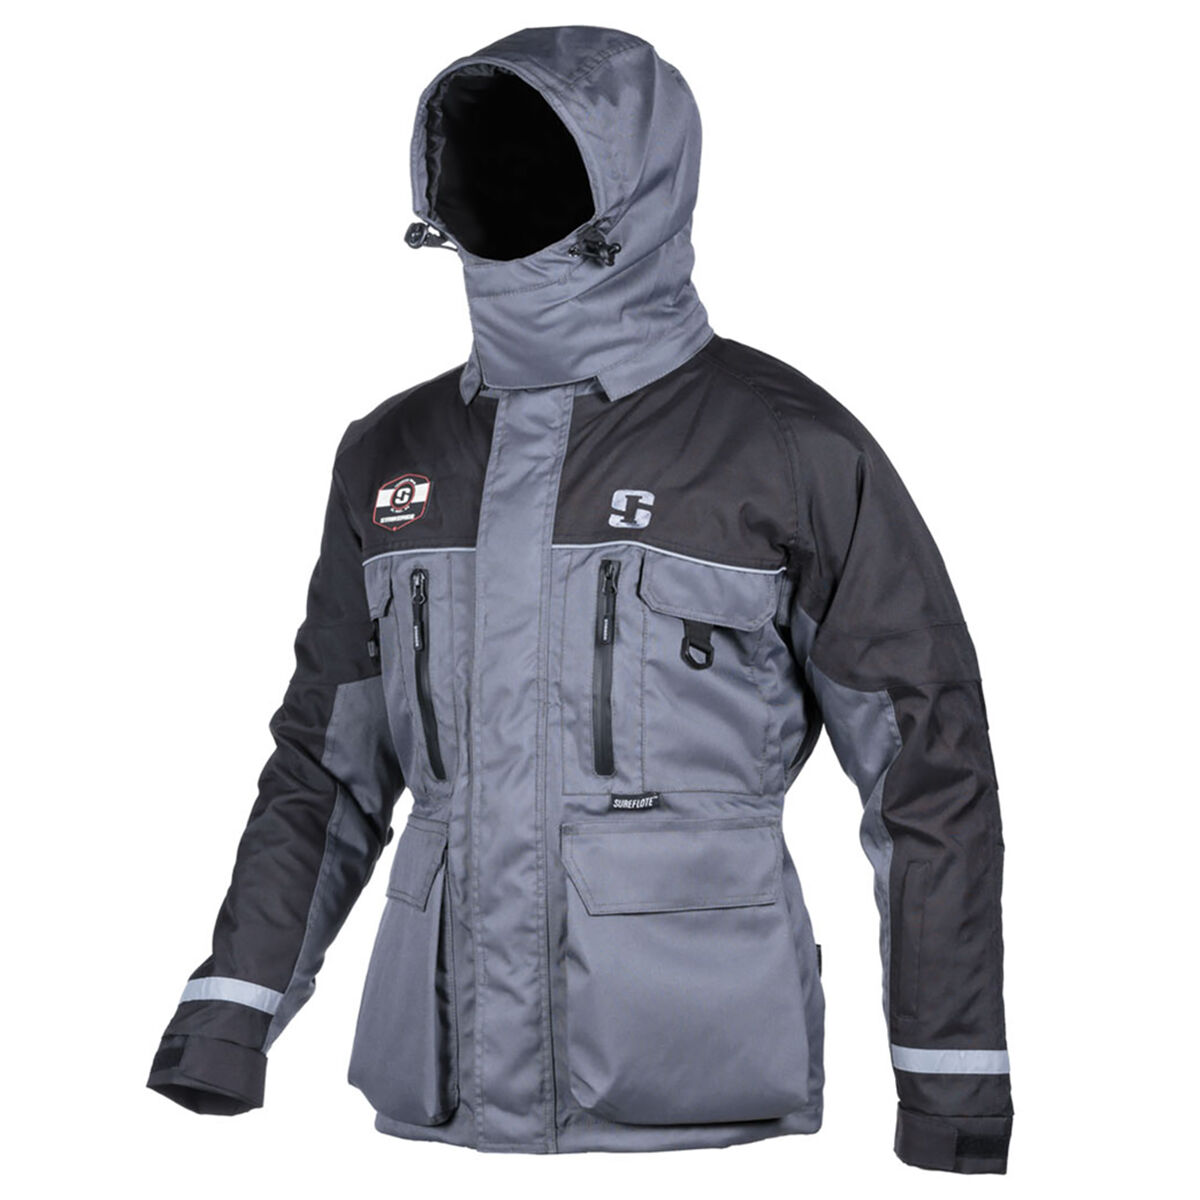 Striker Ice Mens Waterproof Hardwater Jacket all sizes all colors